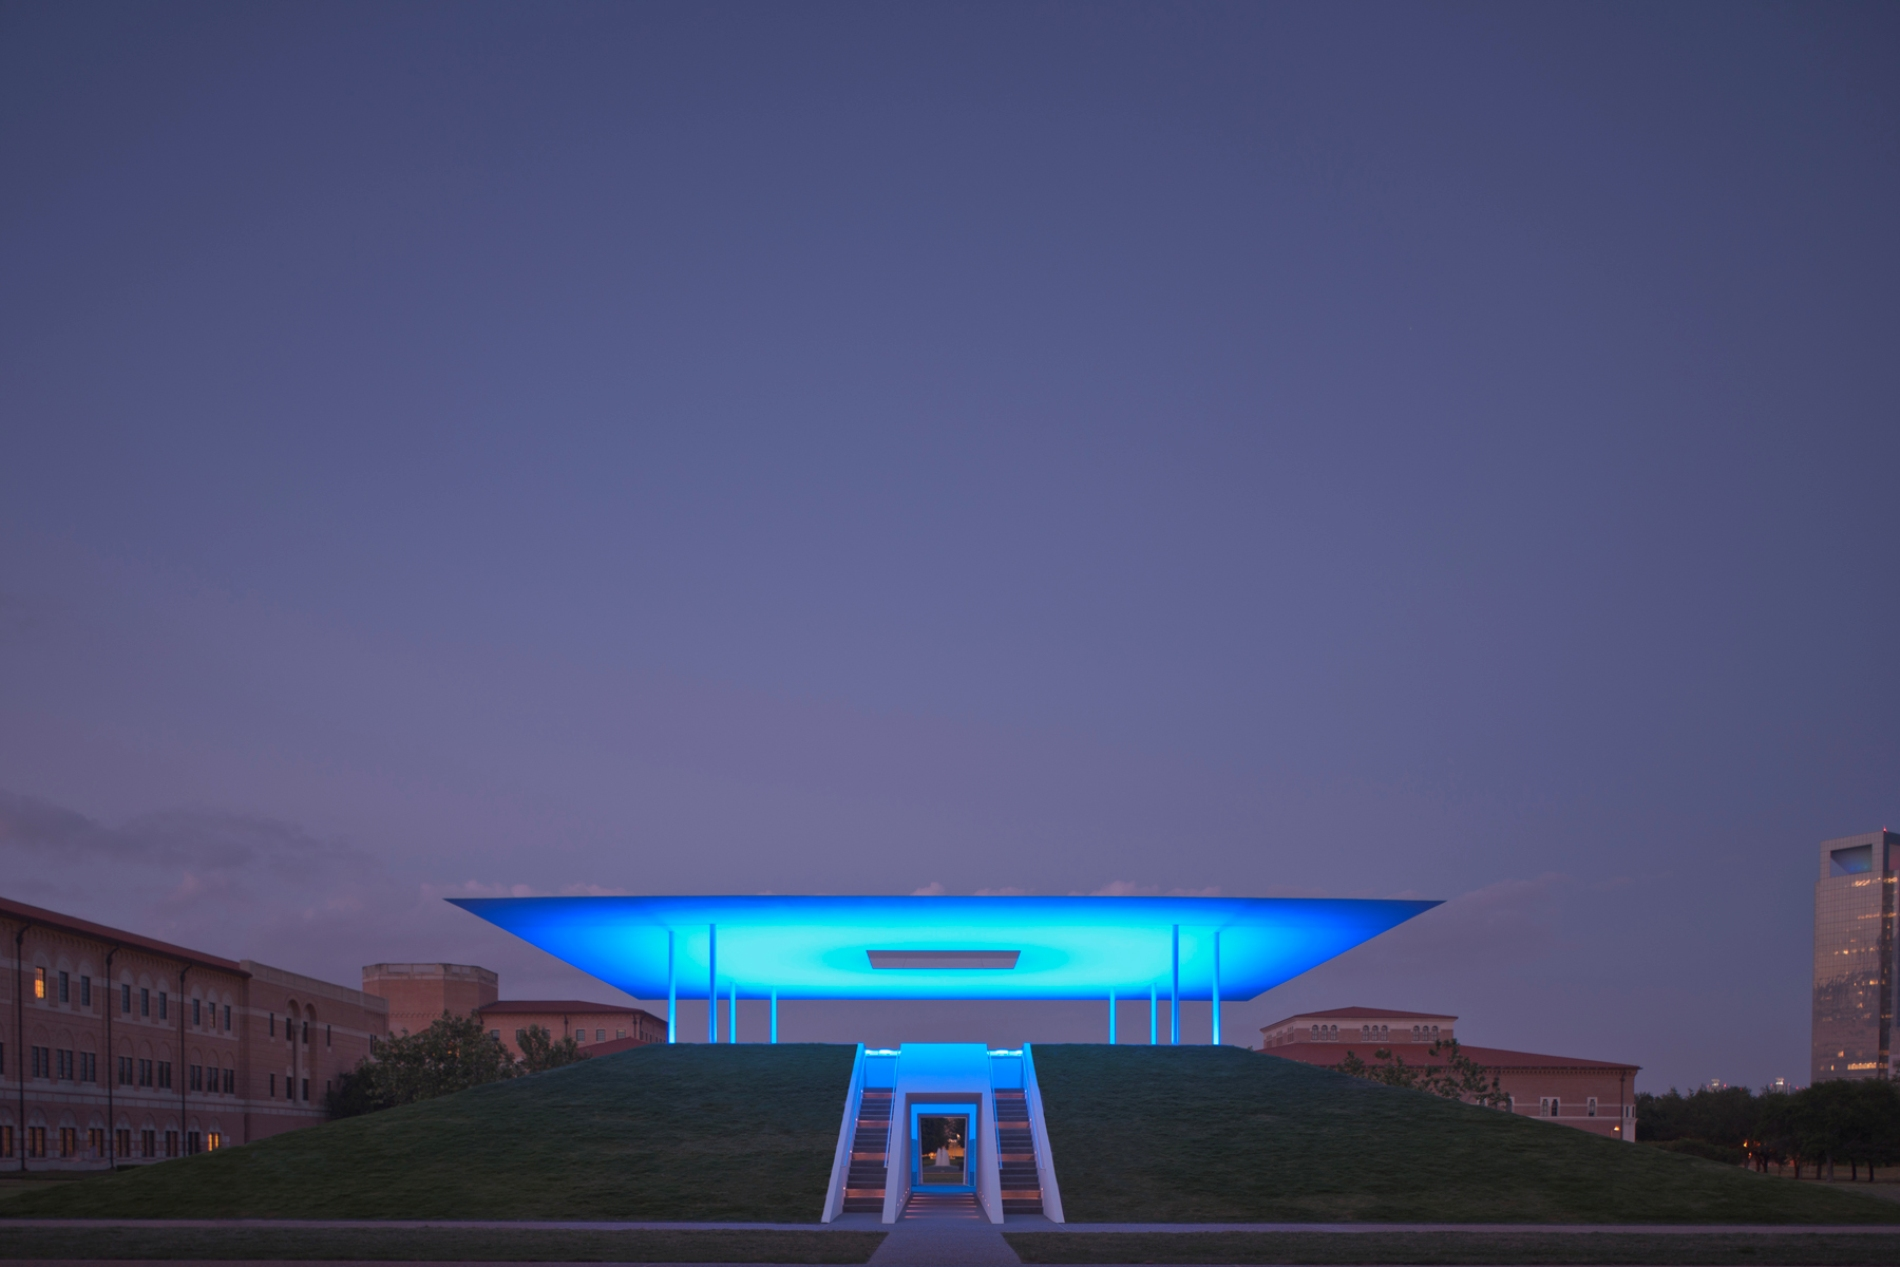 Epifania do Crepúsculo / James Turrell, © Inhabitat